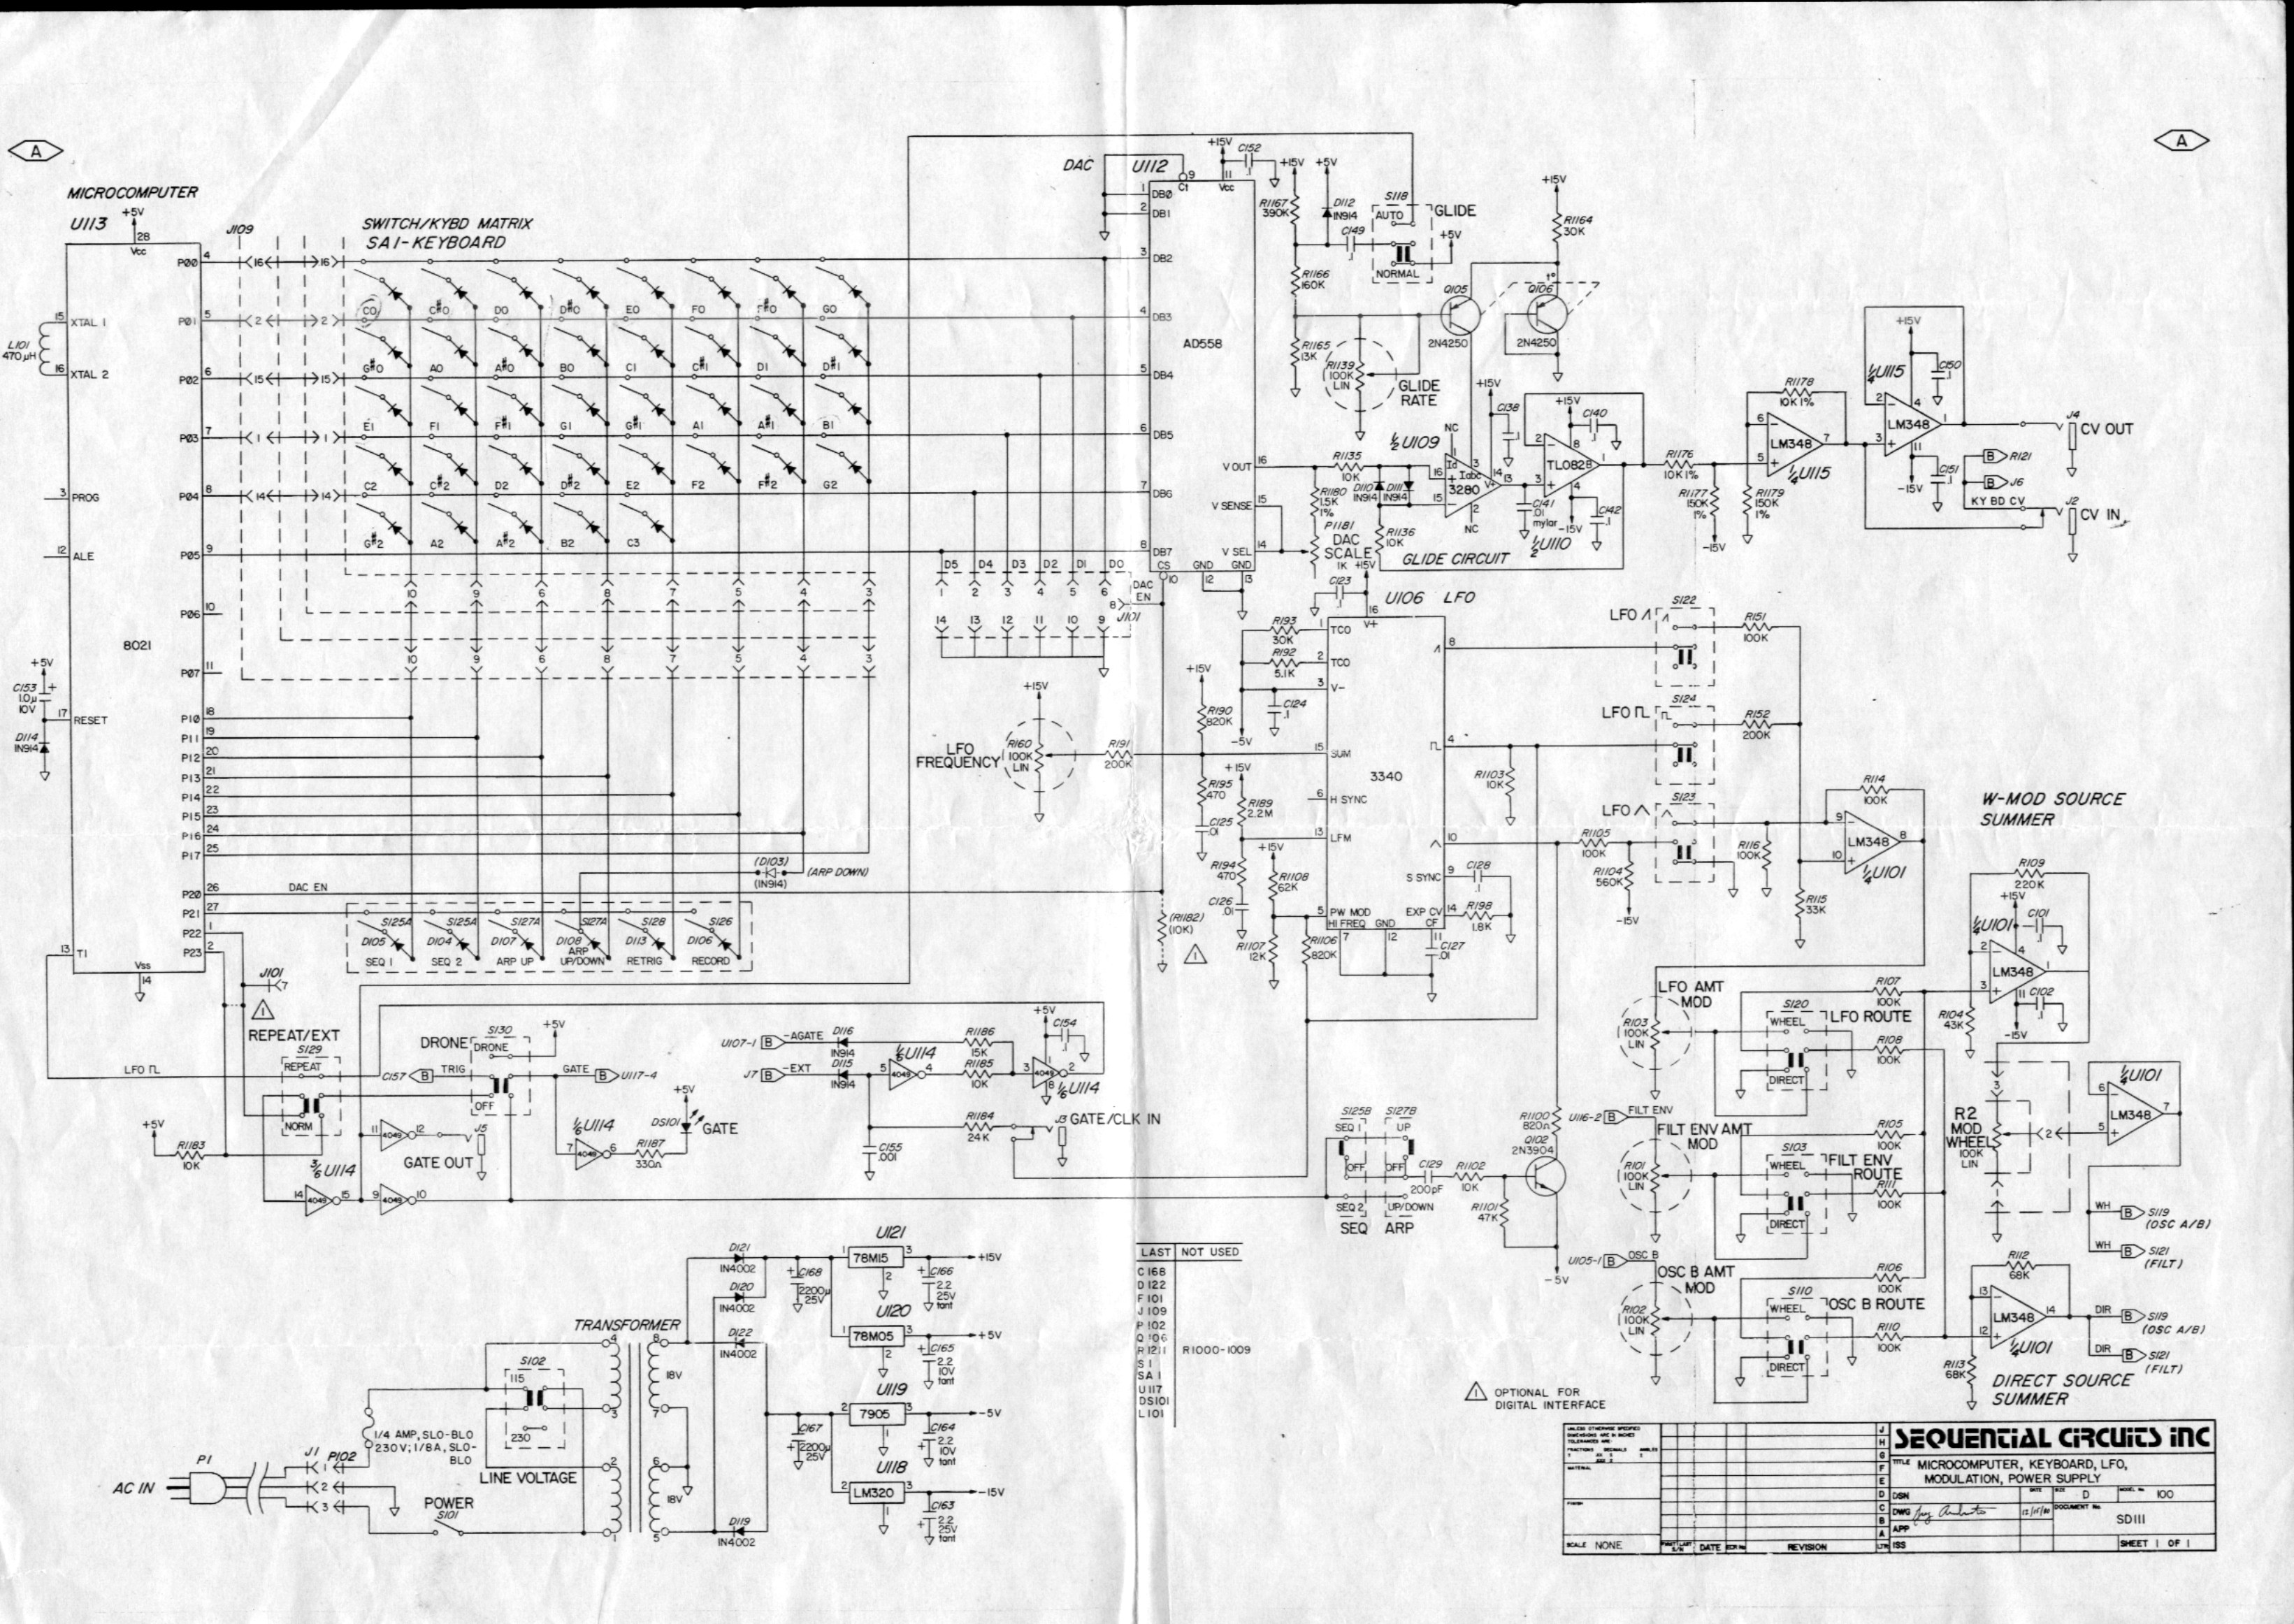 Sequential Circuits - Pro-One - Schematic